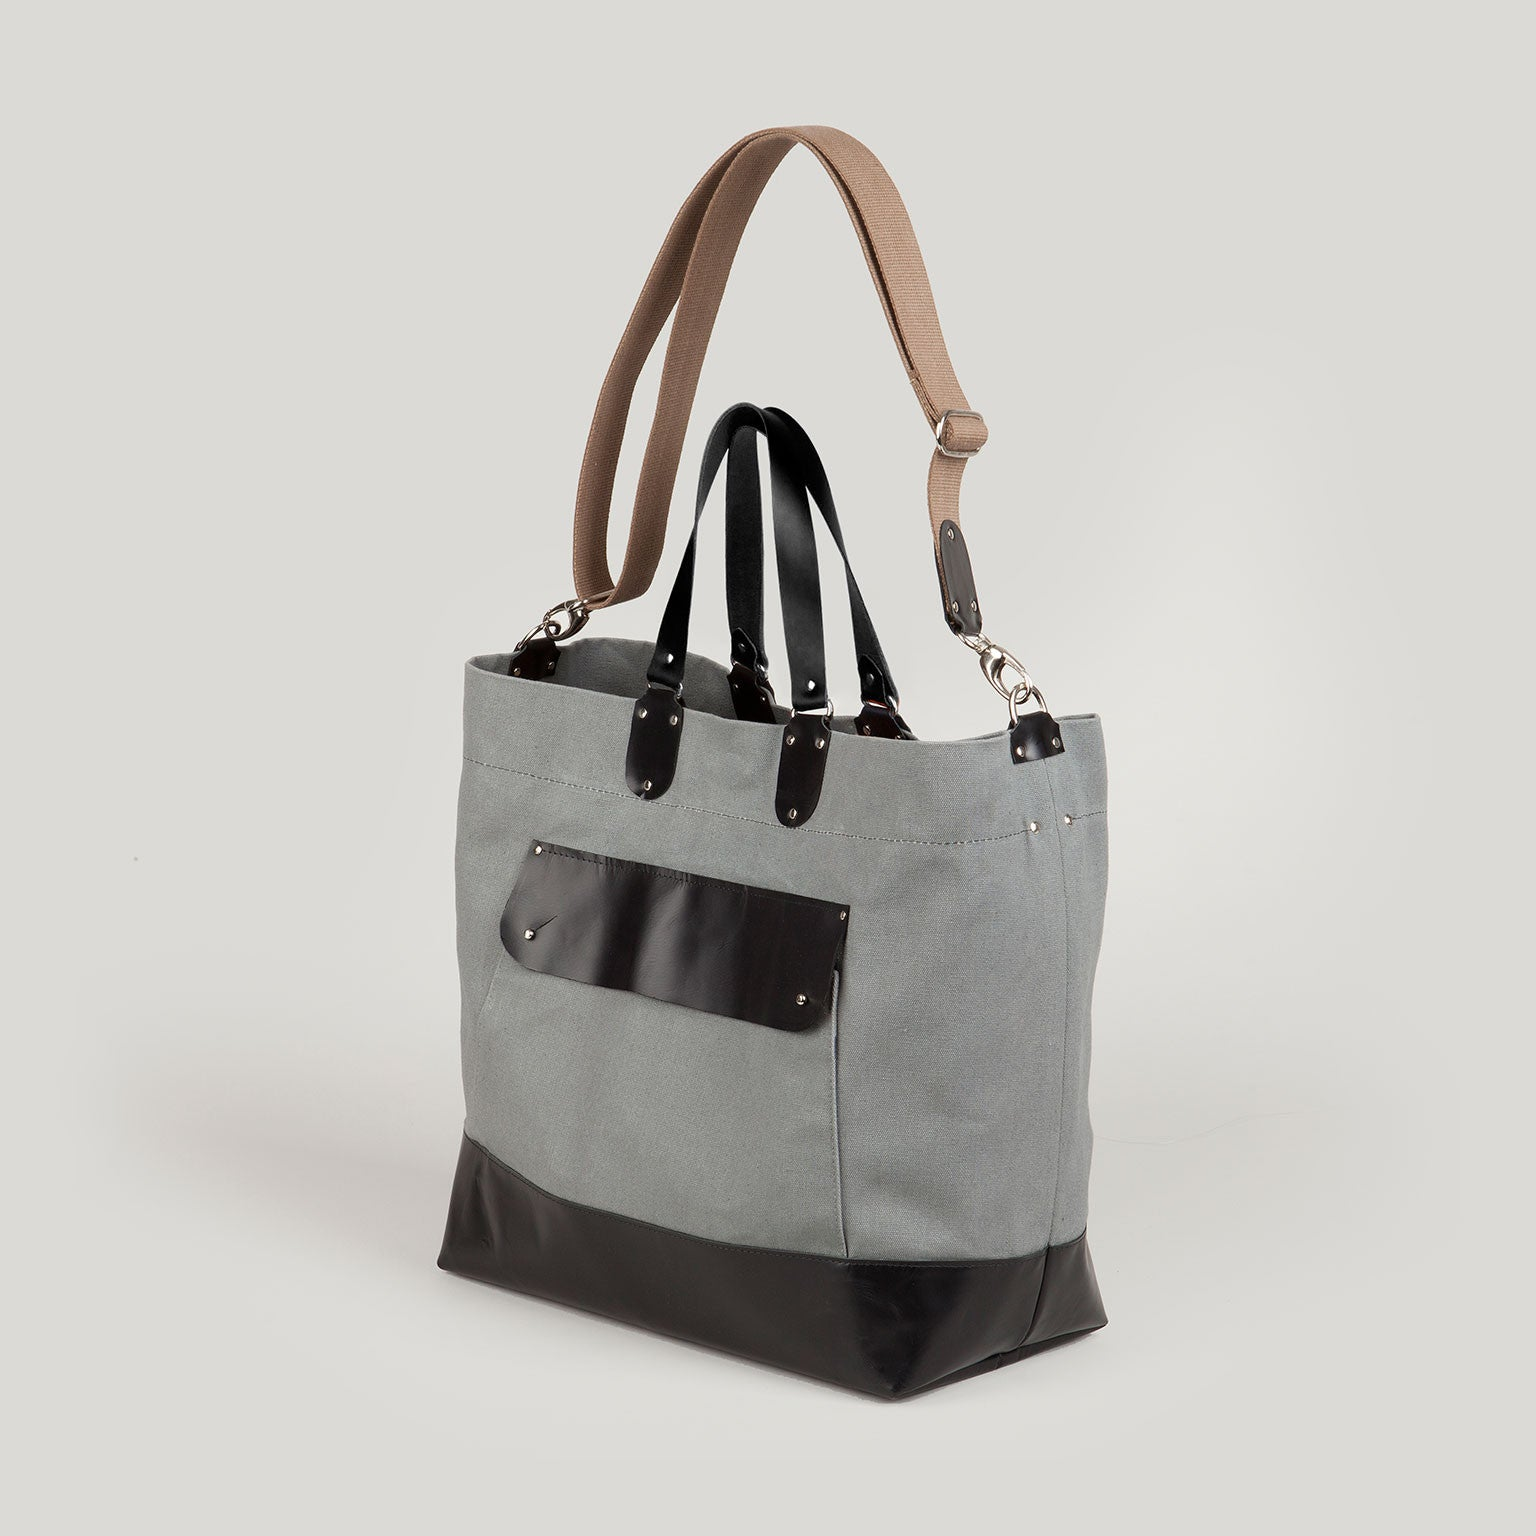 JETT Large Tote - grey